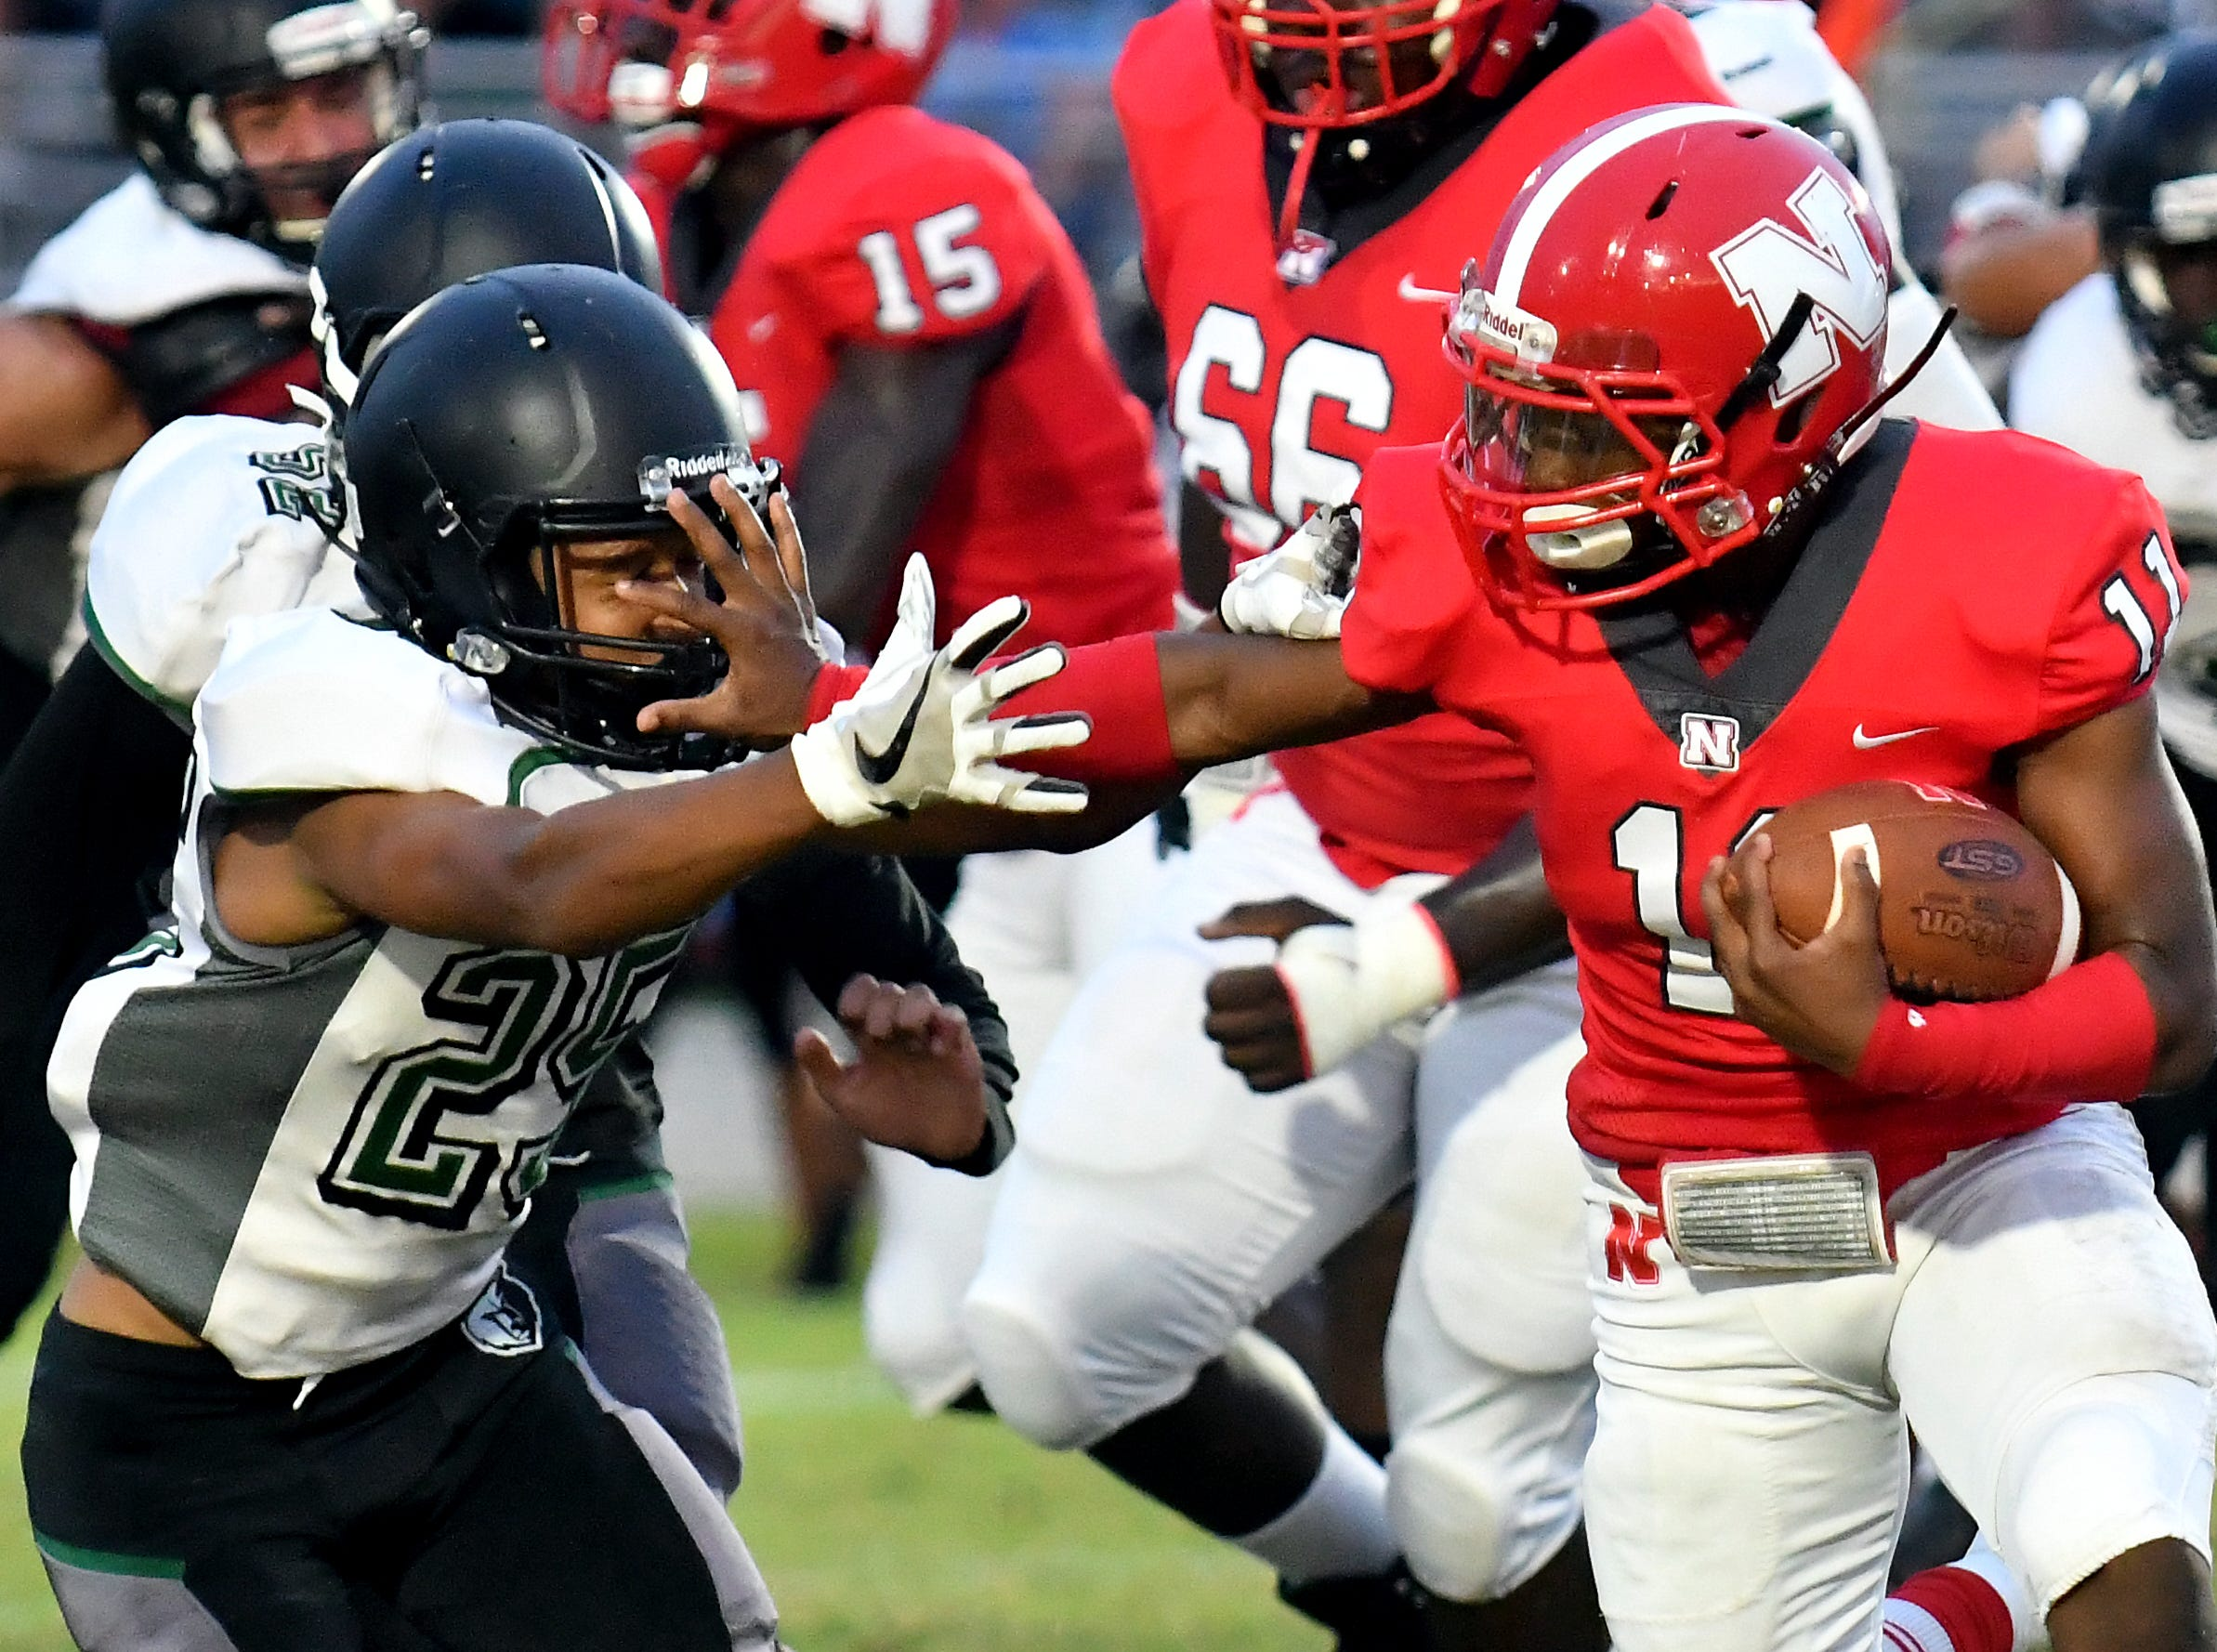 North Fort Myers High School running back Shomari Manson (11) stiff arms defender Julian Valentin (25) during their game with Palmetto Ridge High School, Friday, Sept. 7, 2018. (Chris Tilley/Special to the Naples Daily News)